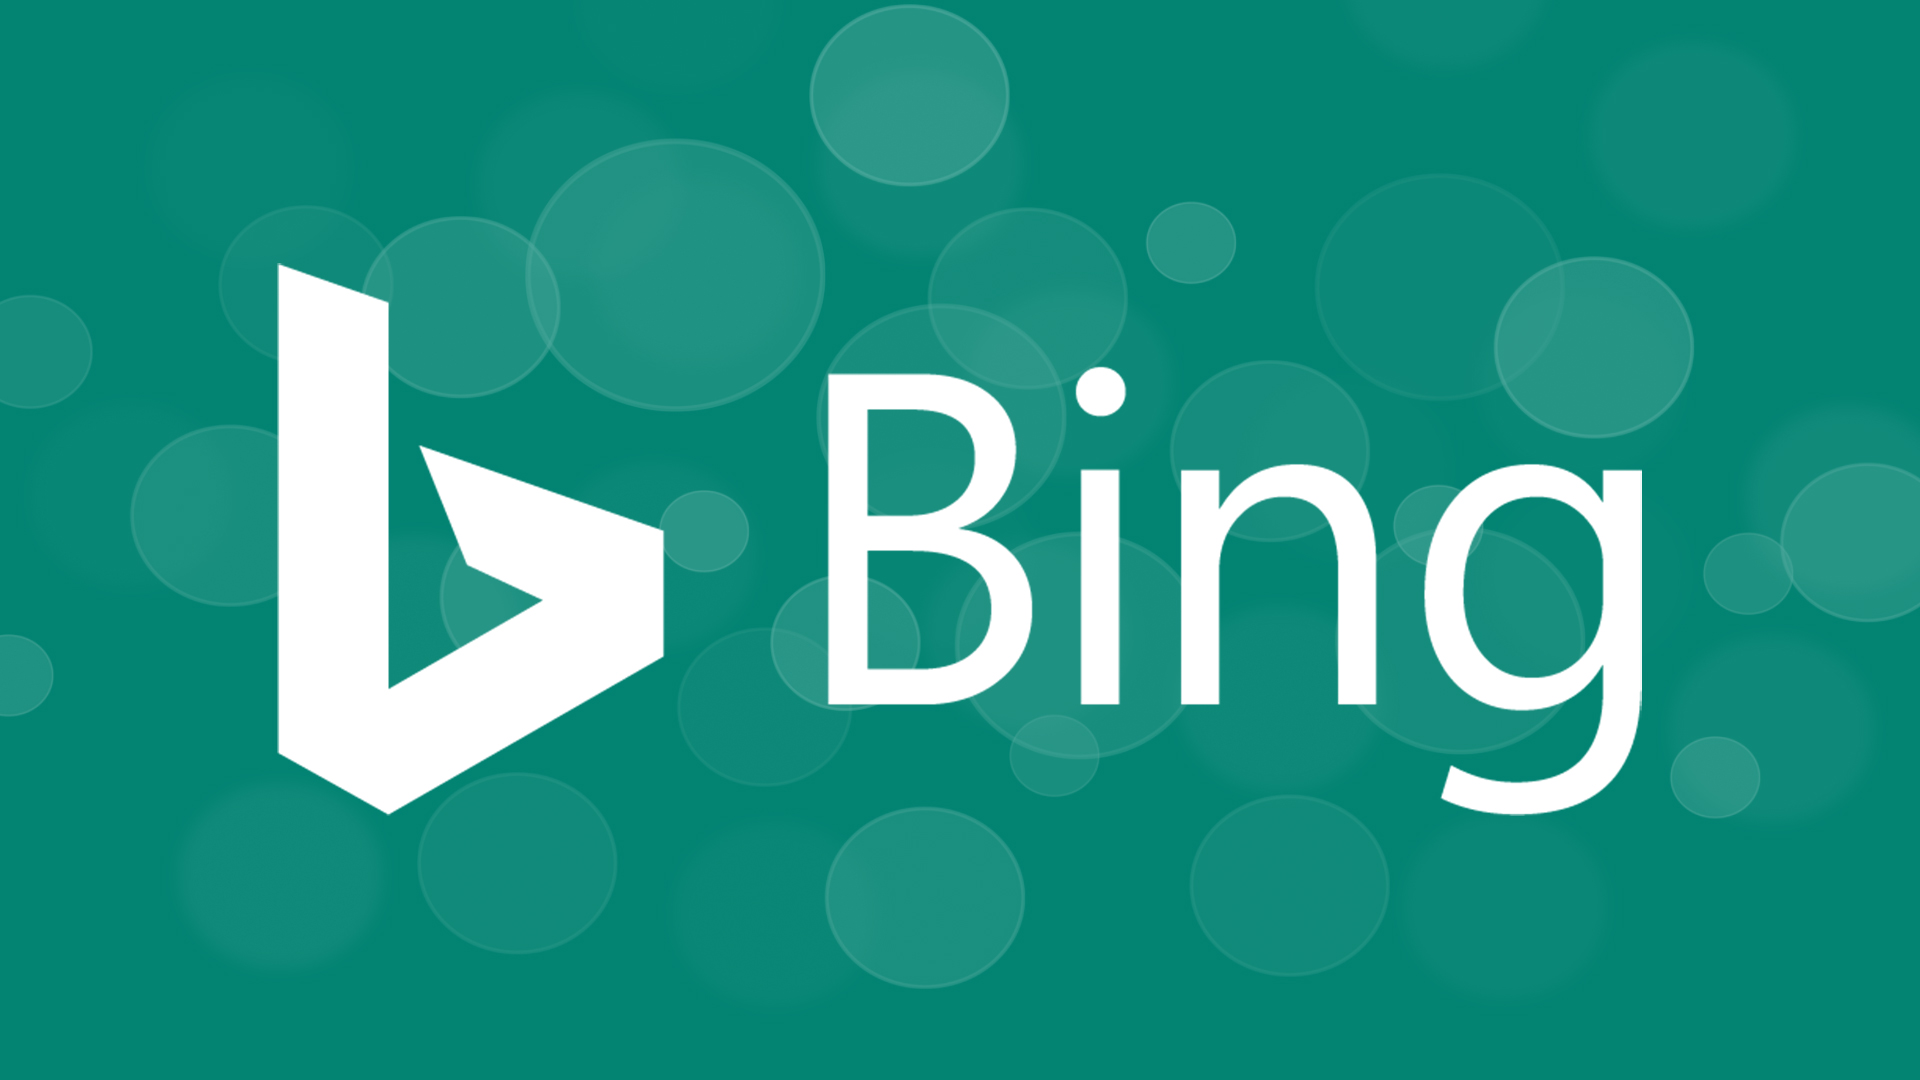 bing-teal-logo-wordmark5-1920